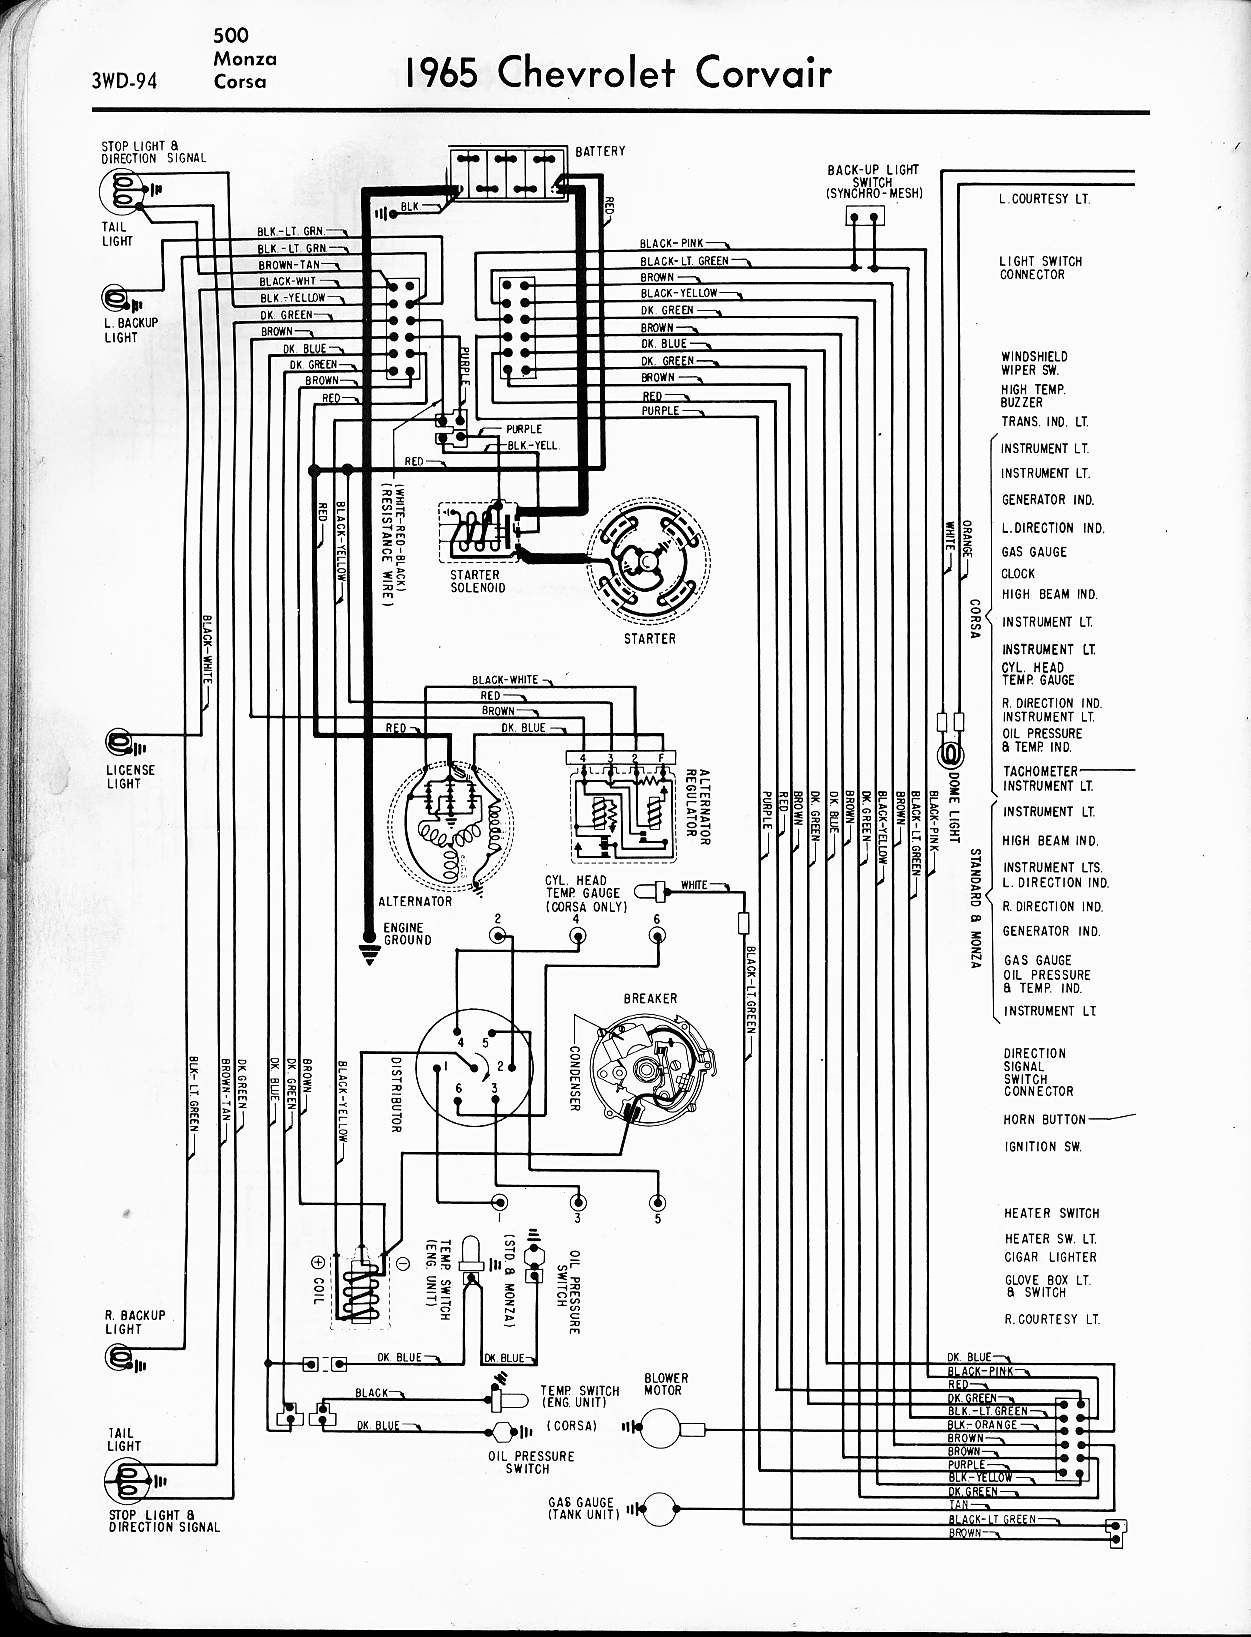 hight resolution of wiring diagrams of 1964 chevrolet corvair greenbrier wiring 1965 corvair wiring diagram